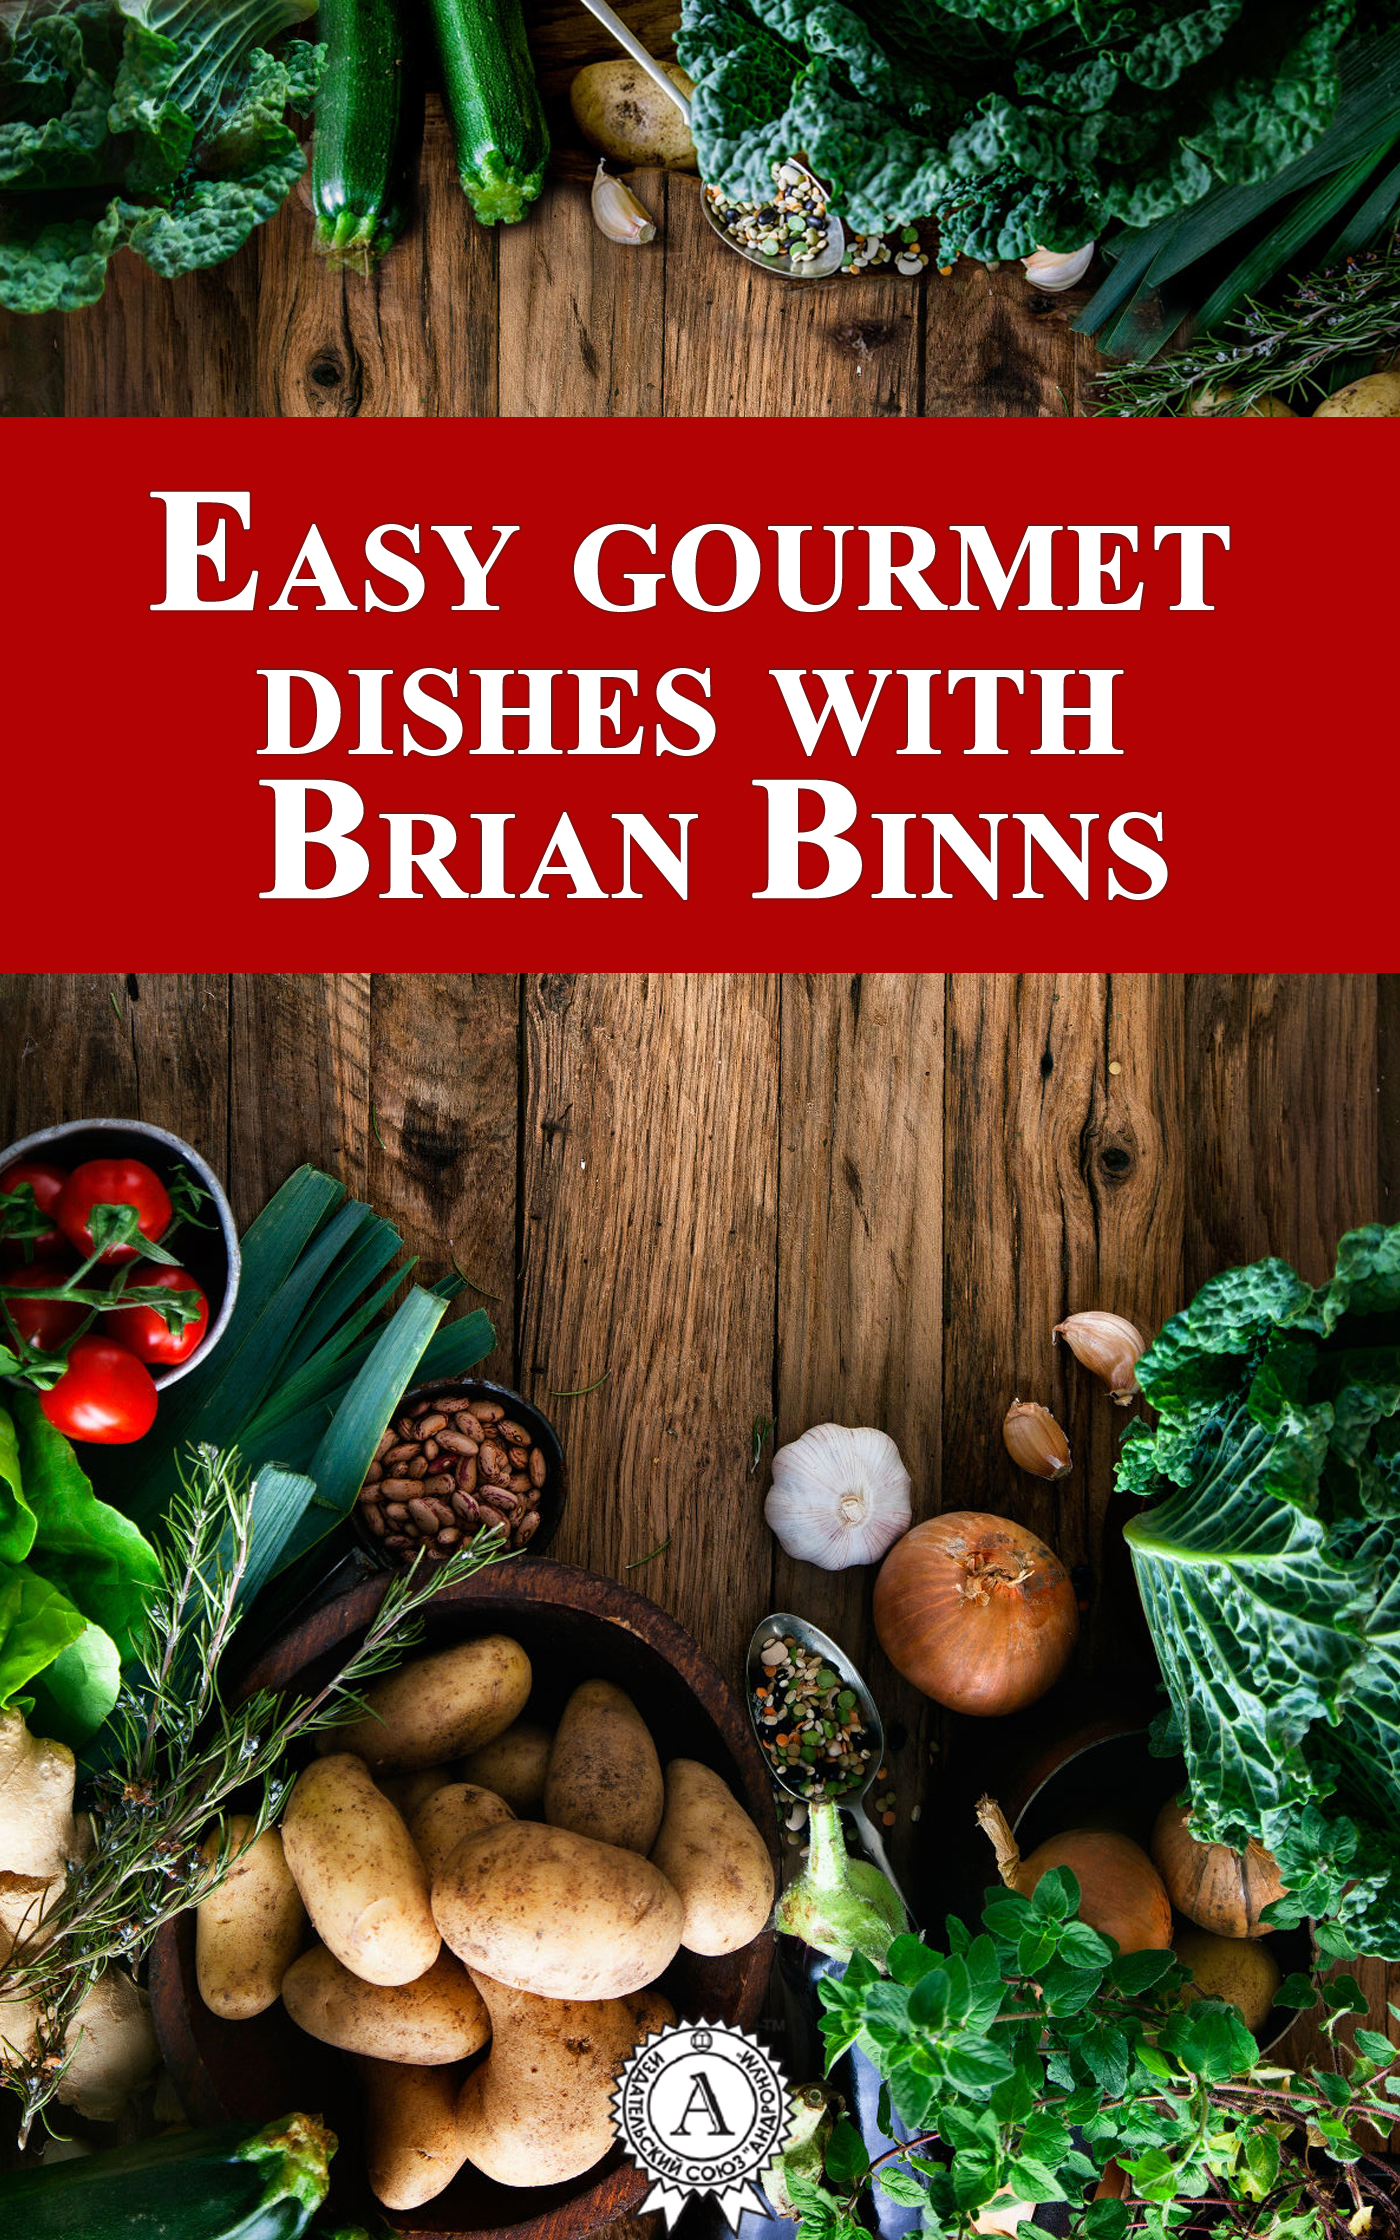 ��������� ������ ����� Easy Gourmet Dishes with Brian Binns ������ Brian Binns